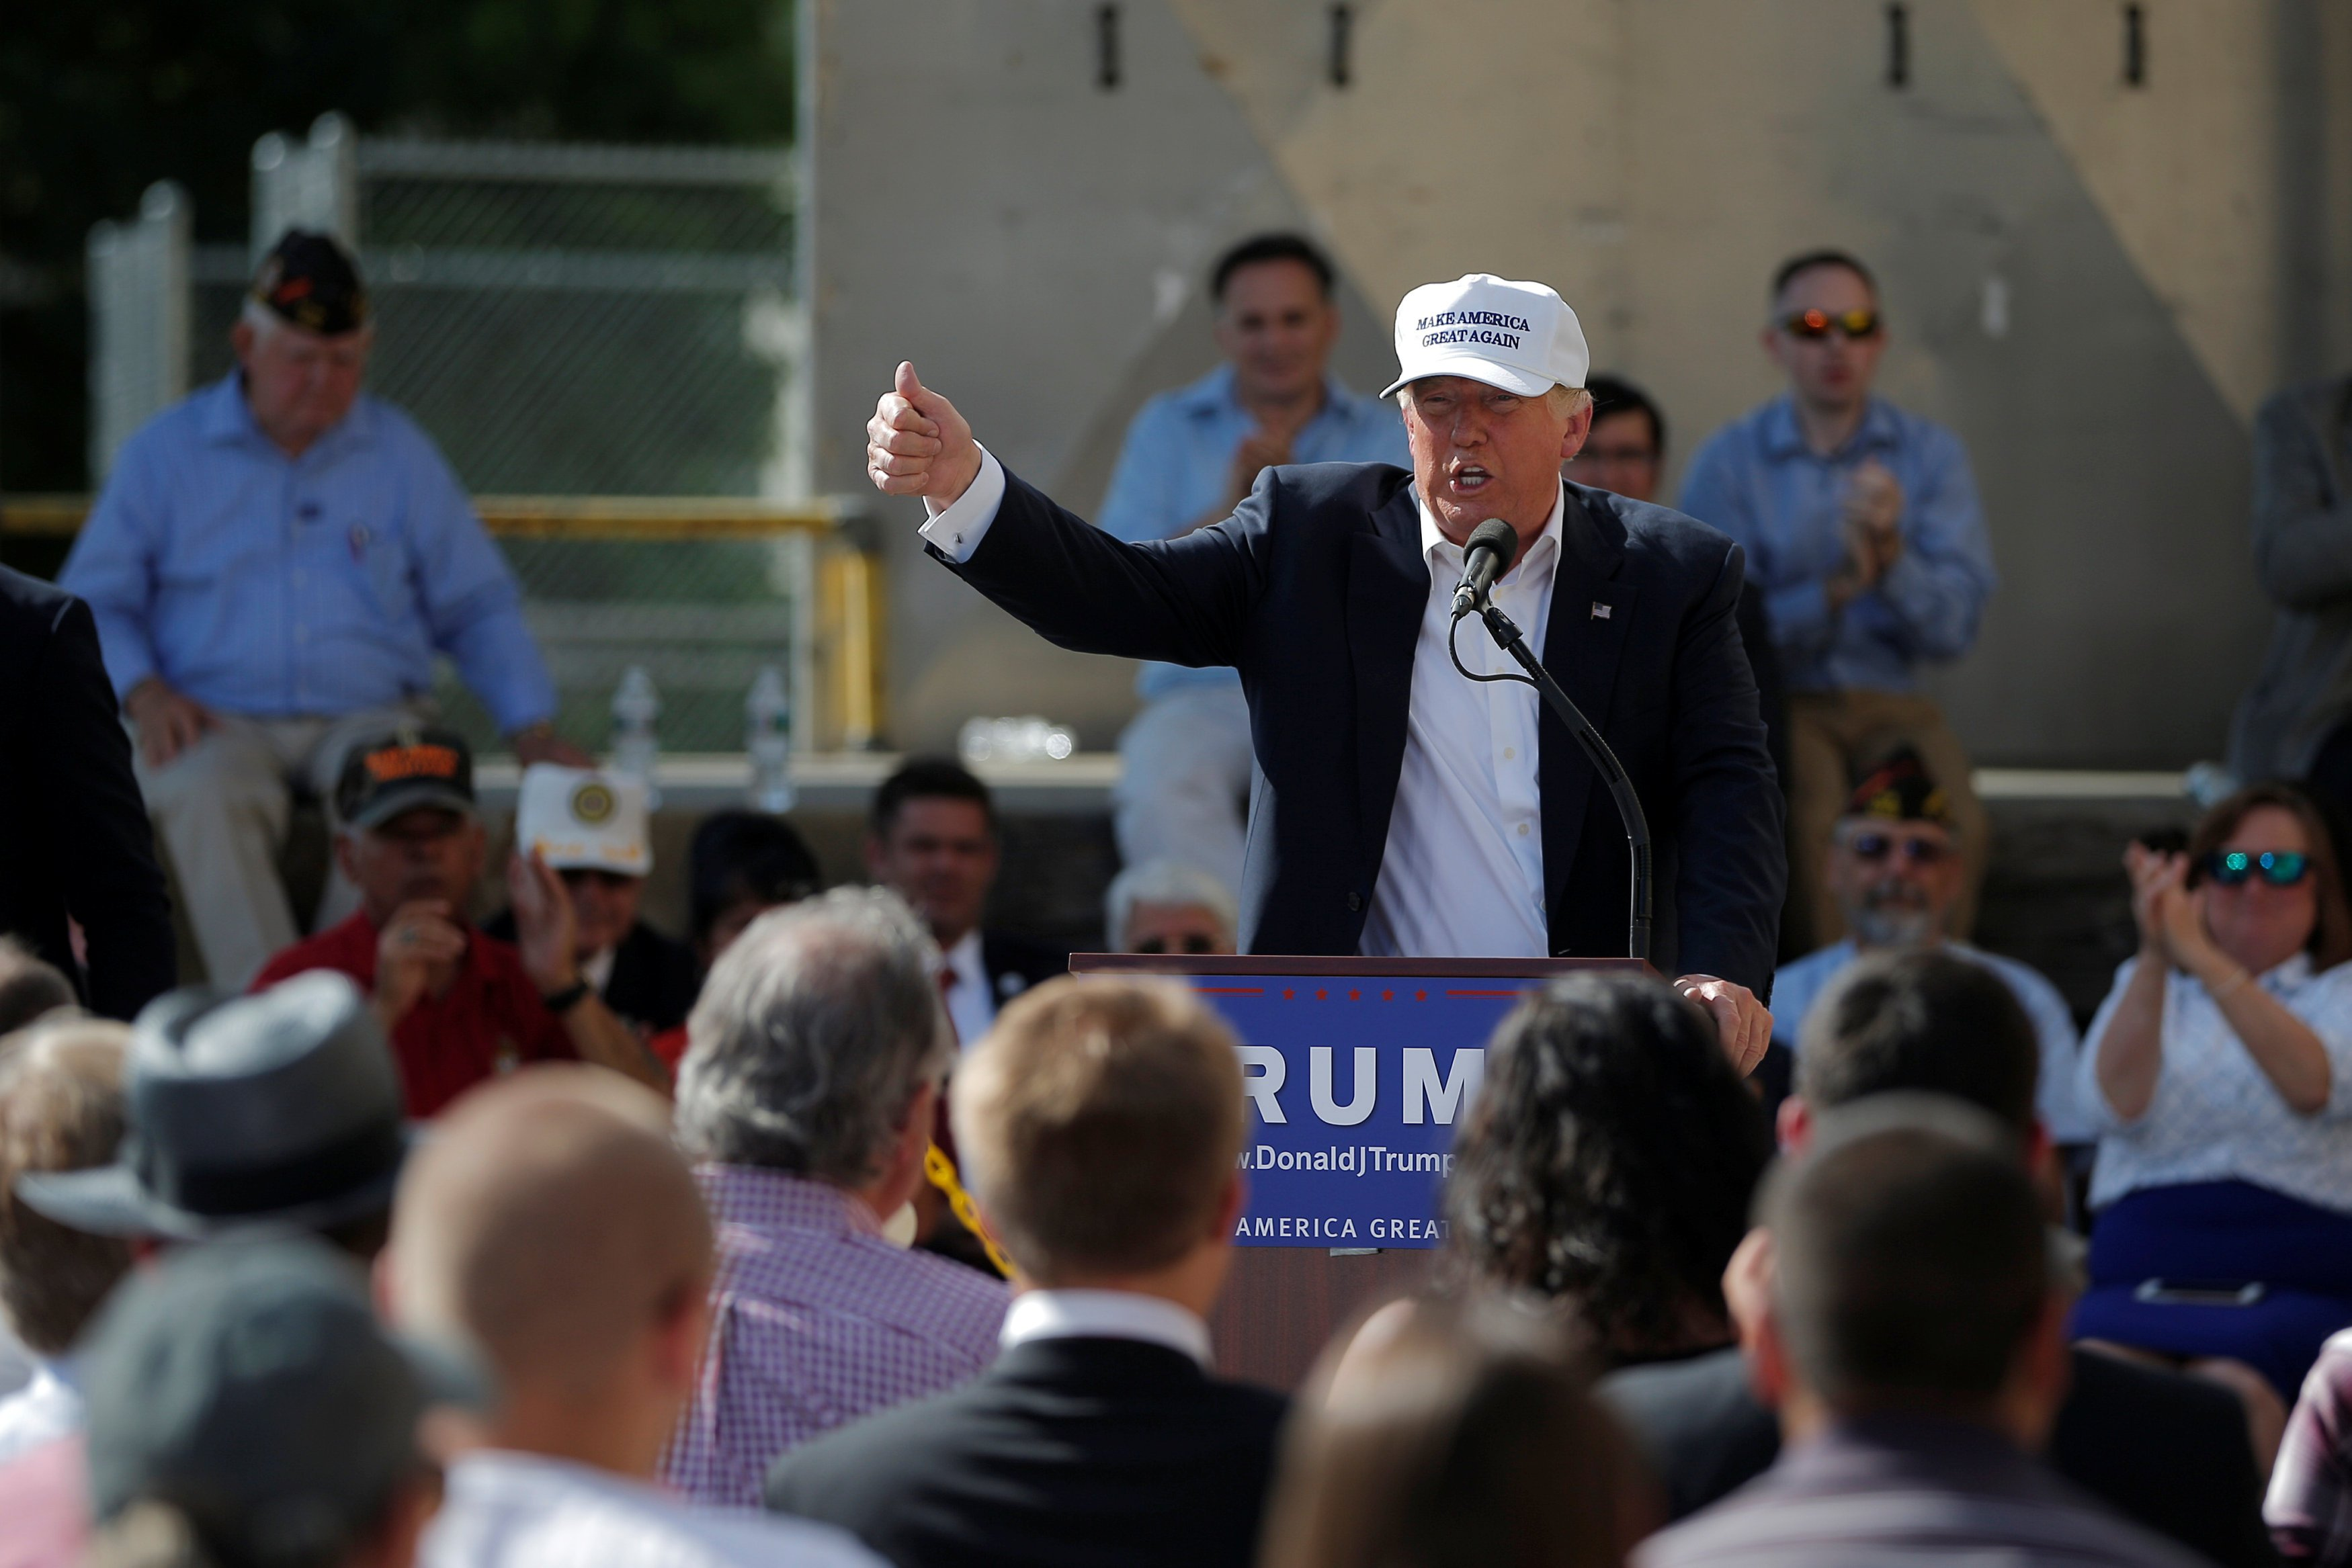 U.S. Republican presidential candidate Donald Trump speaks at a campaign town hall meeting outside a closed Osram Sylvania manufacturing facility in Manchester, New Hampshire June 30, 2016.